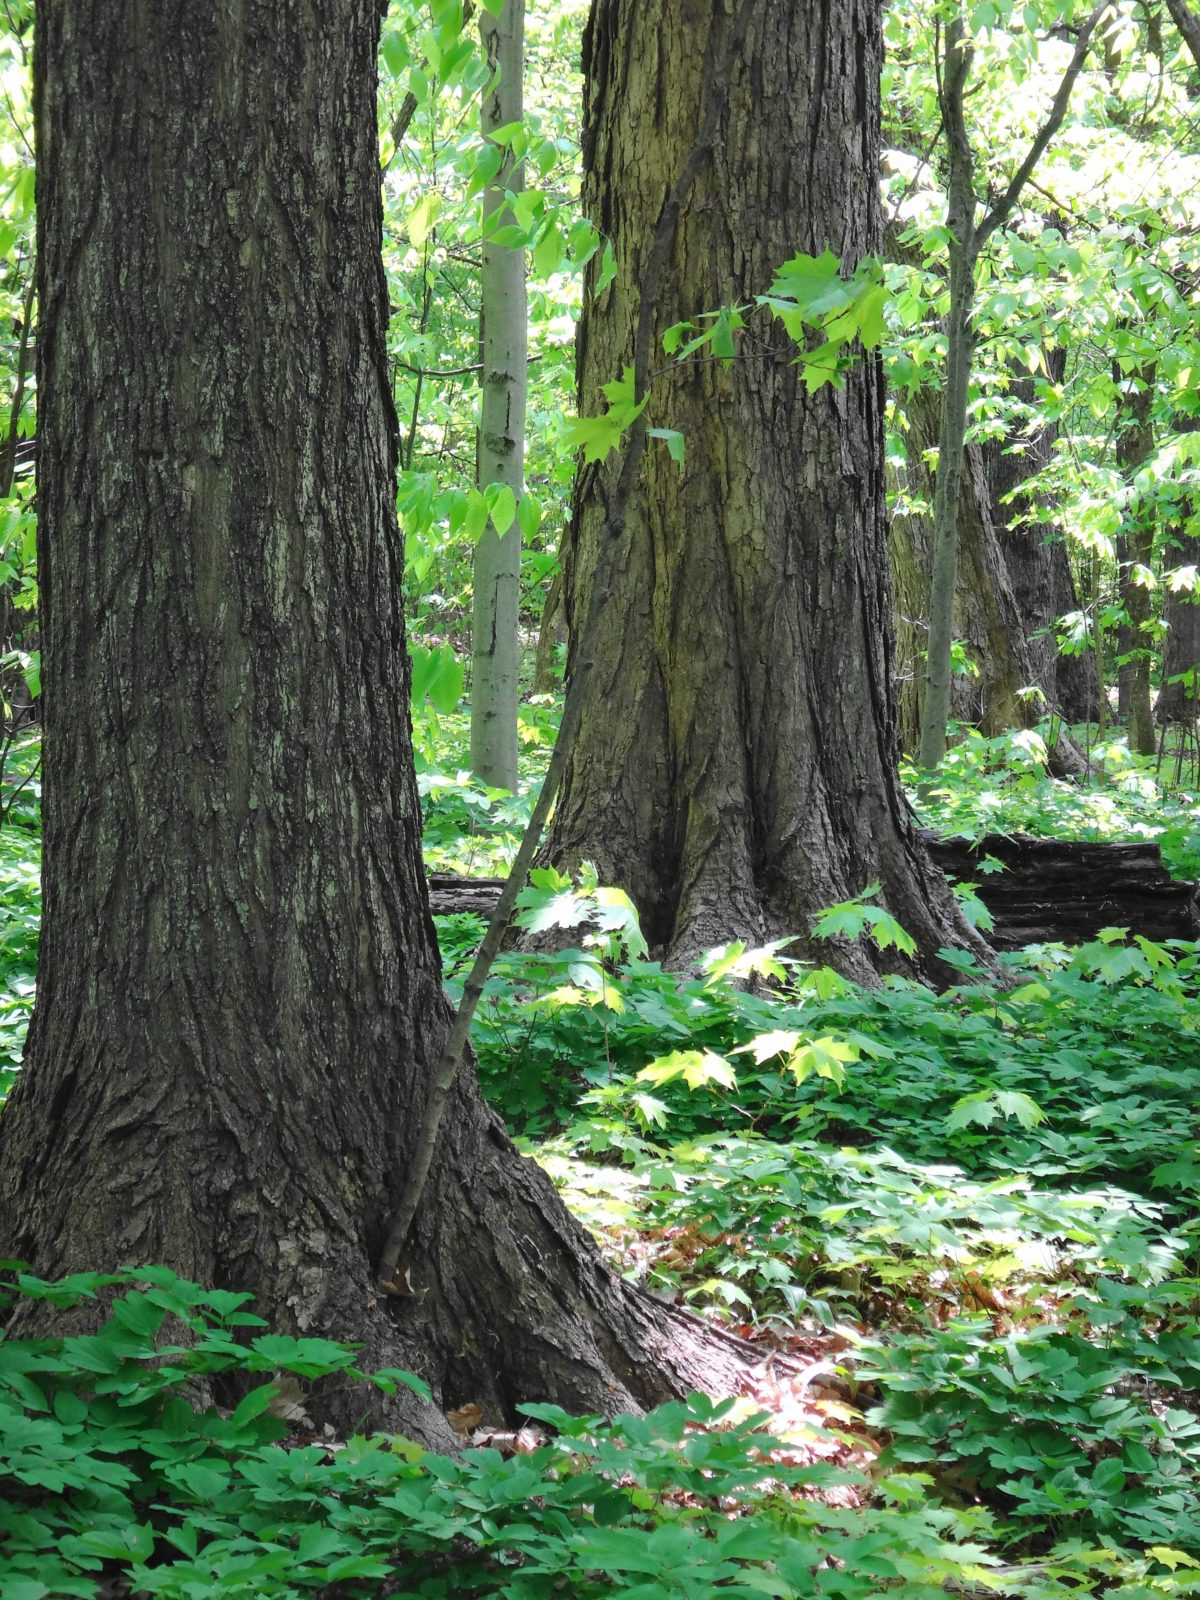 Two enormous maple tree trunks rise out the undergrowth in a sunlight patch of forest.